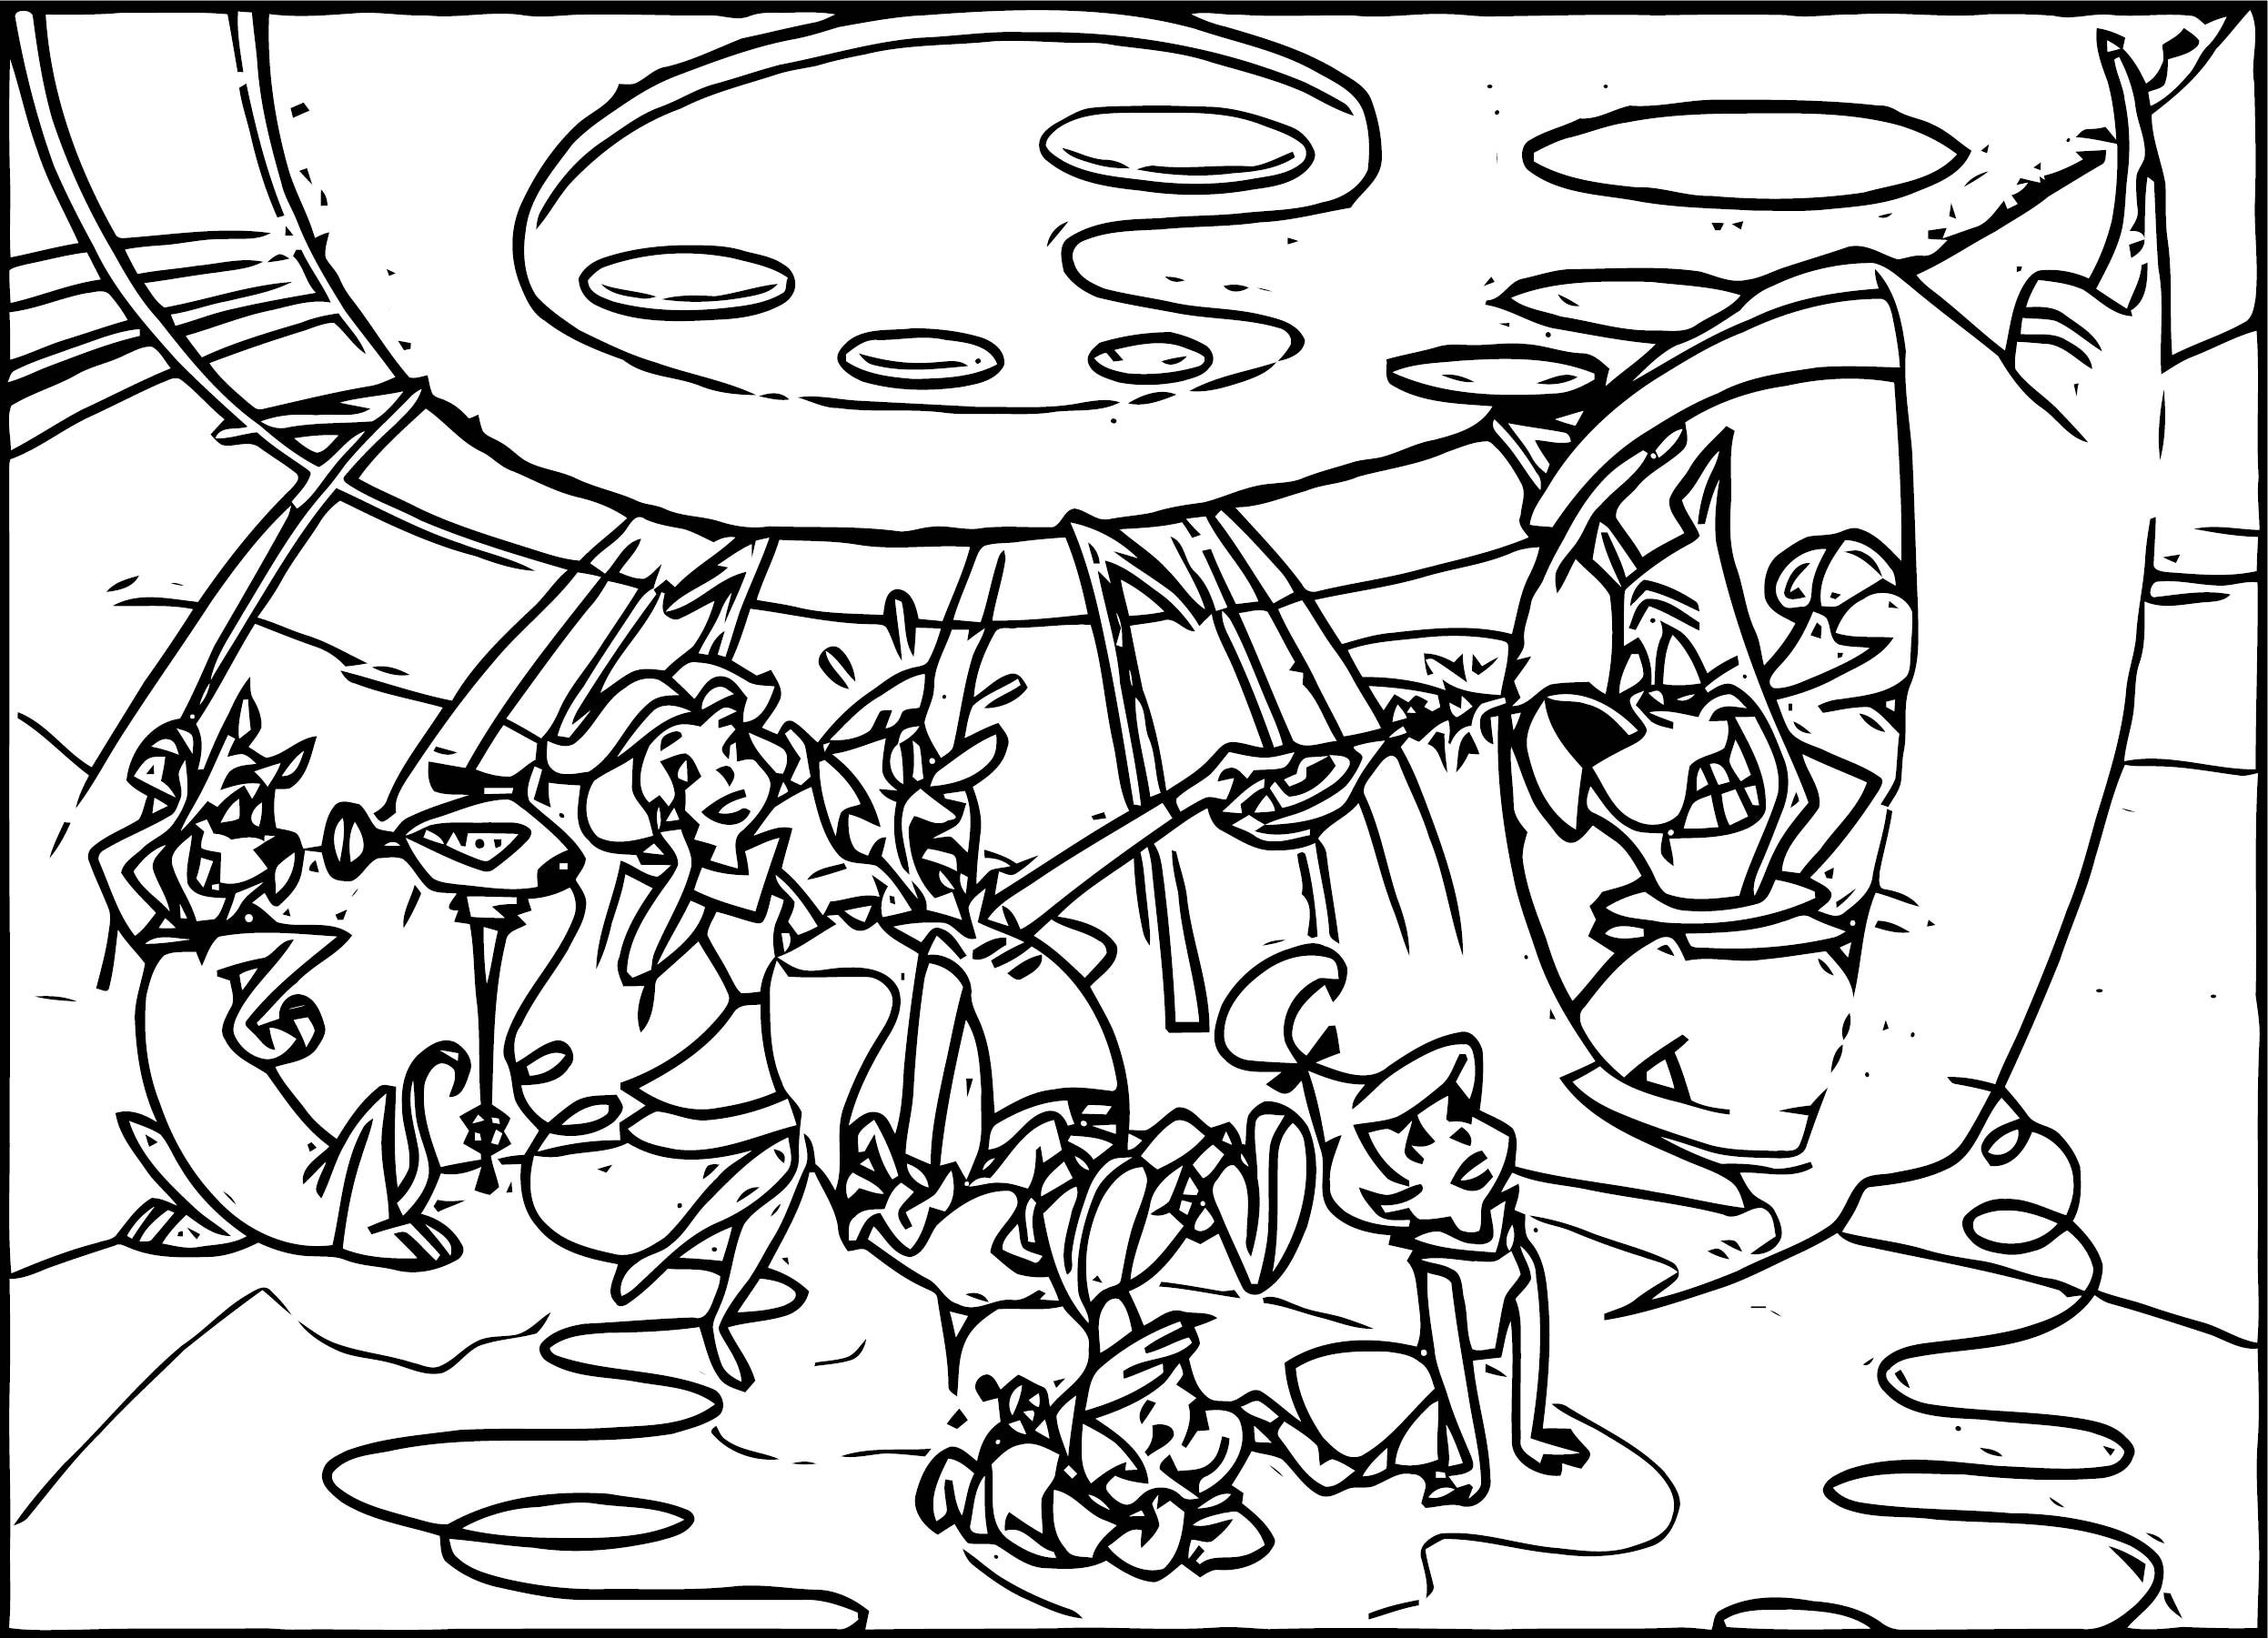 jetson coloring pages - photo#38